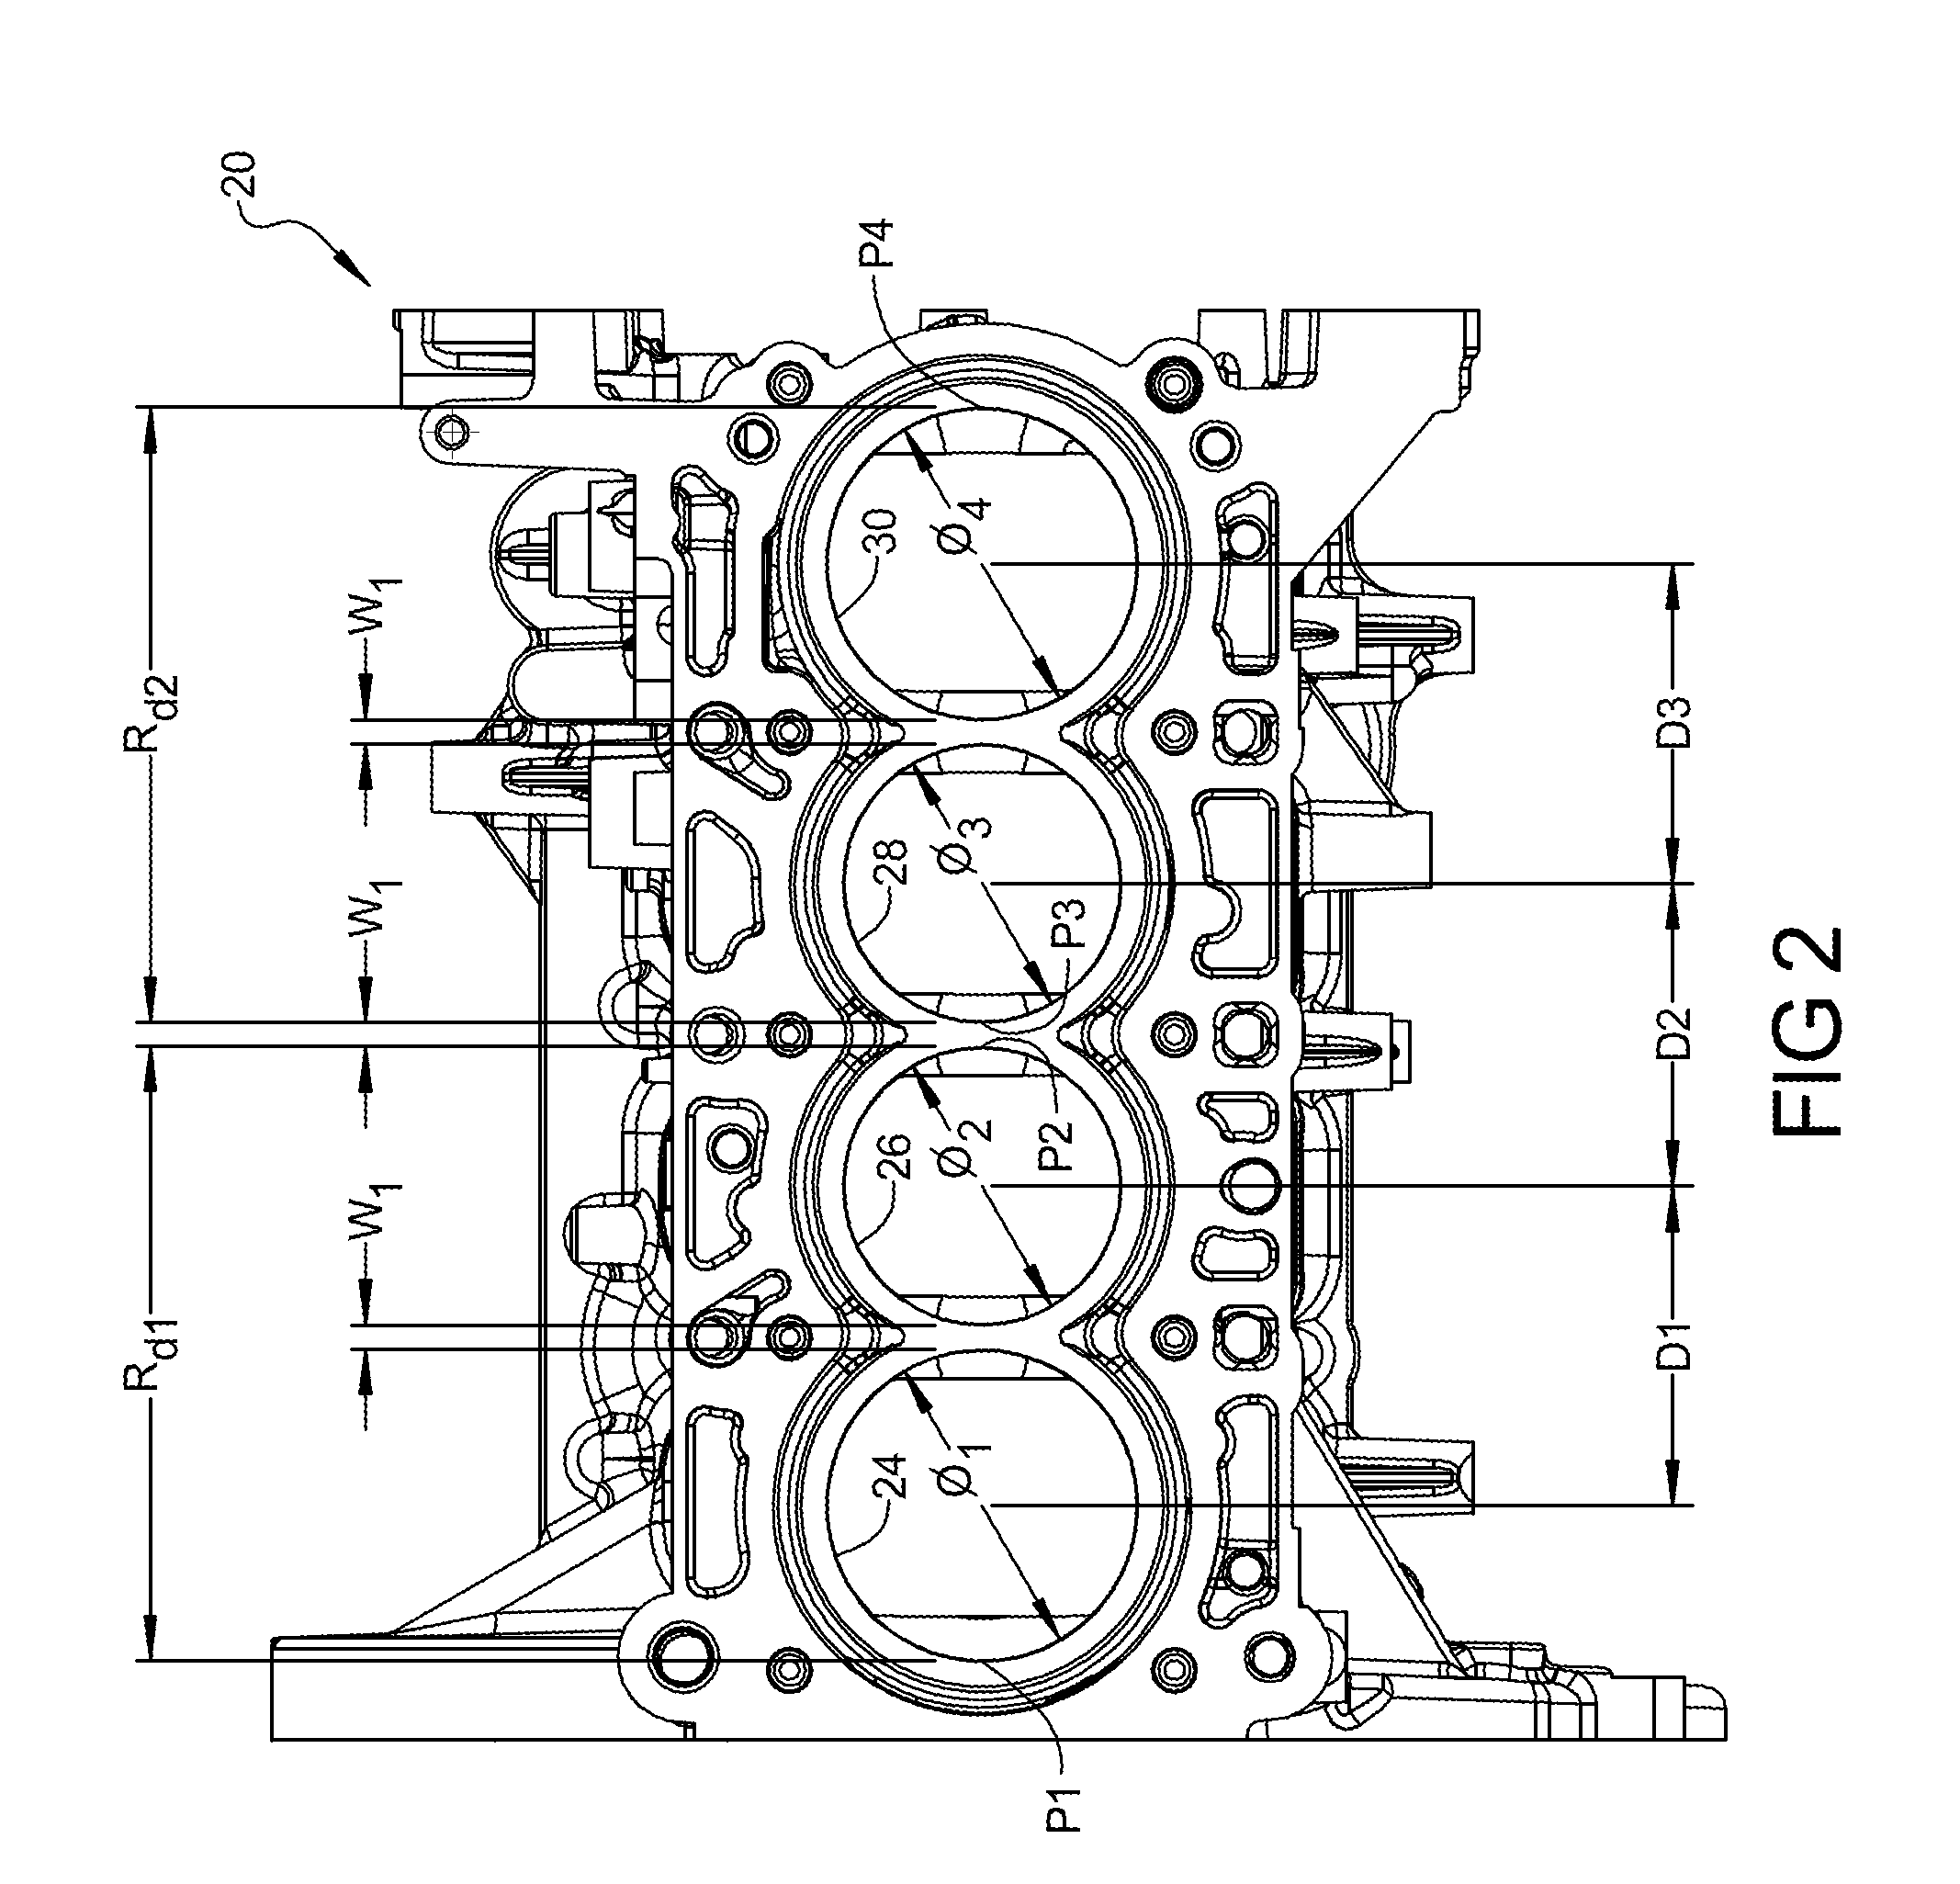 patent us20130061823 - engine assembly including multiple bore center pitch dimensions